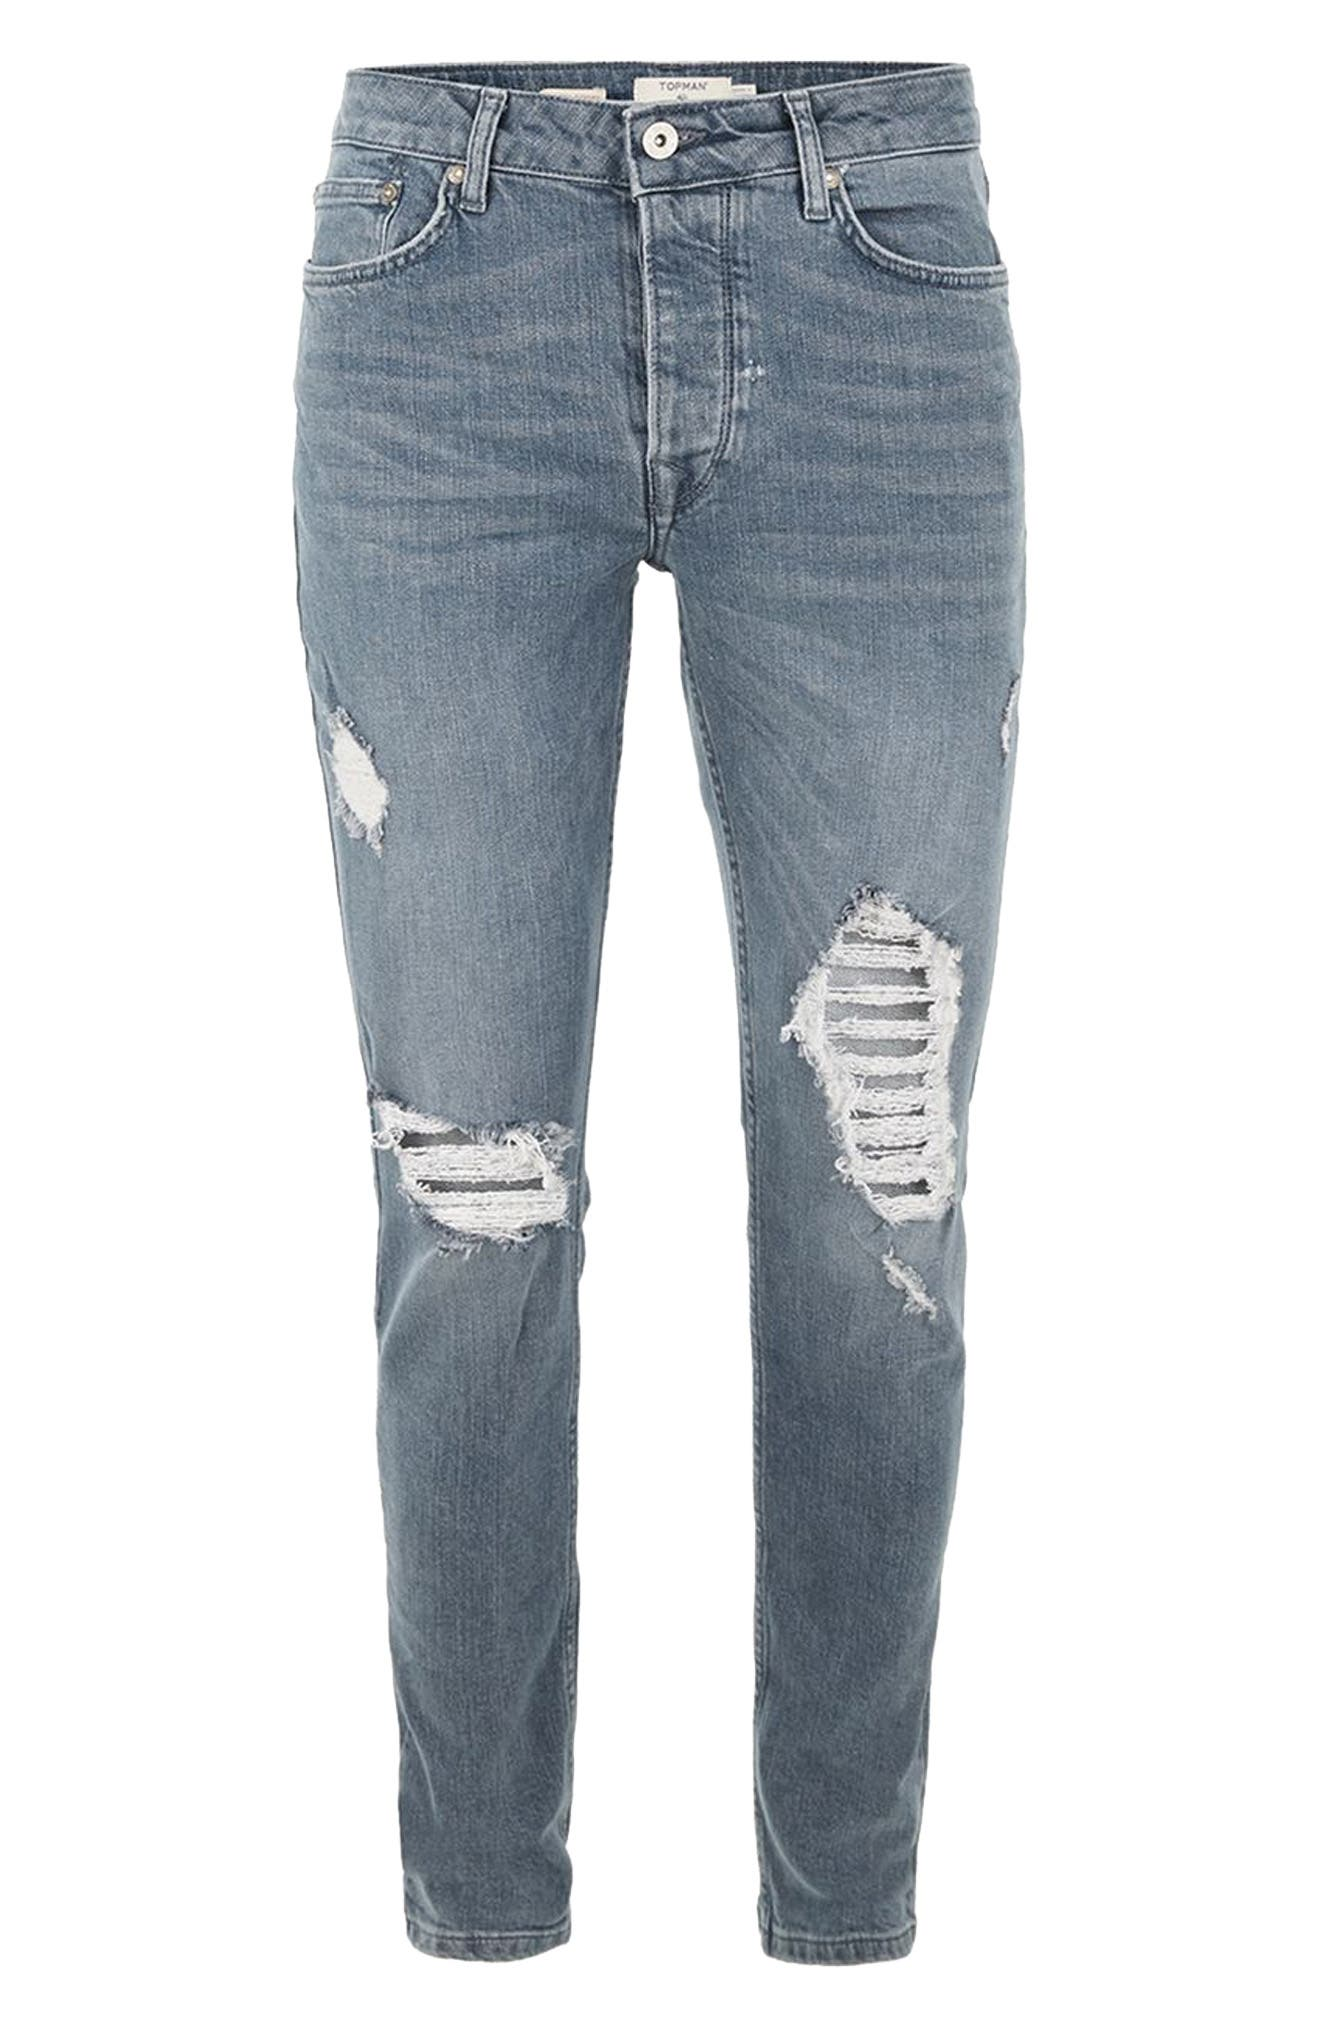 Extreme Rip Stretch Jeans,                             Alternate thumbnail 4, color,